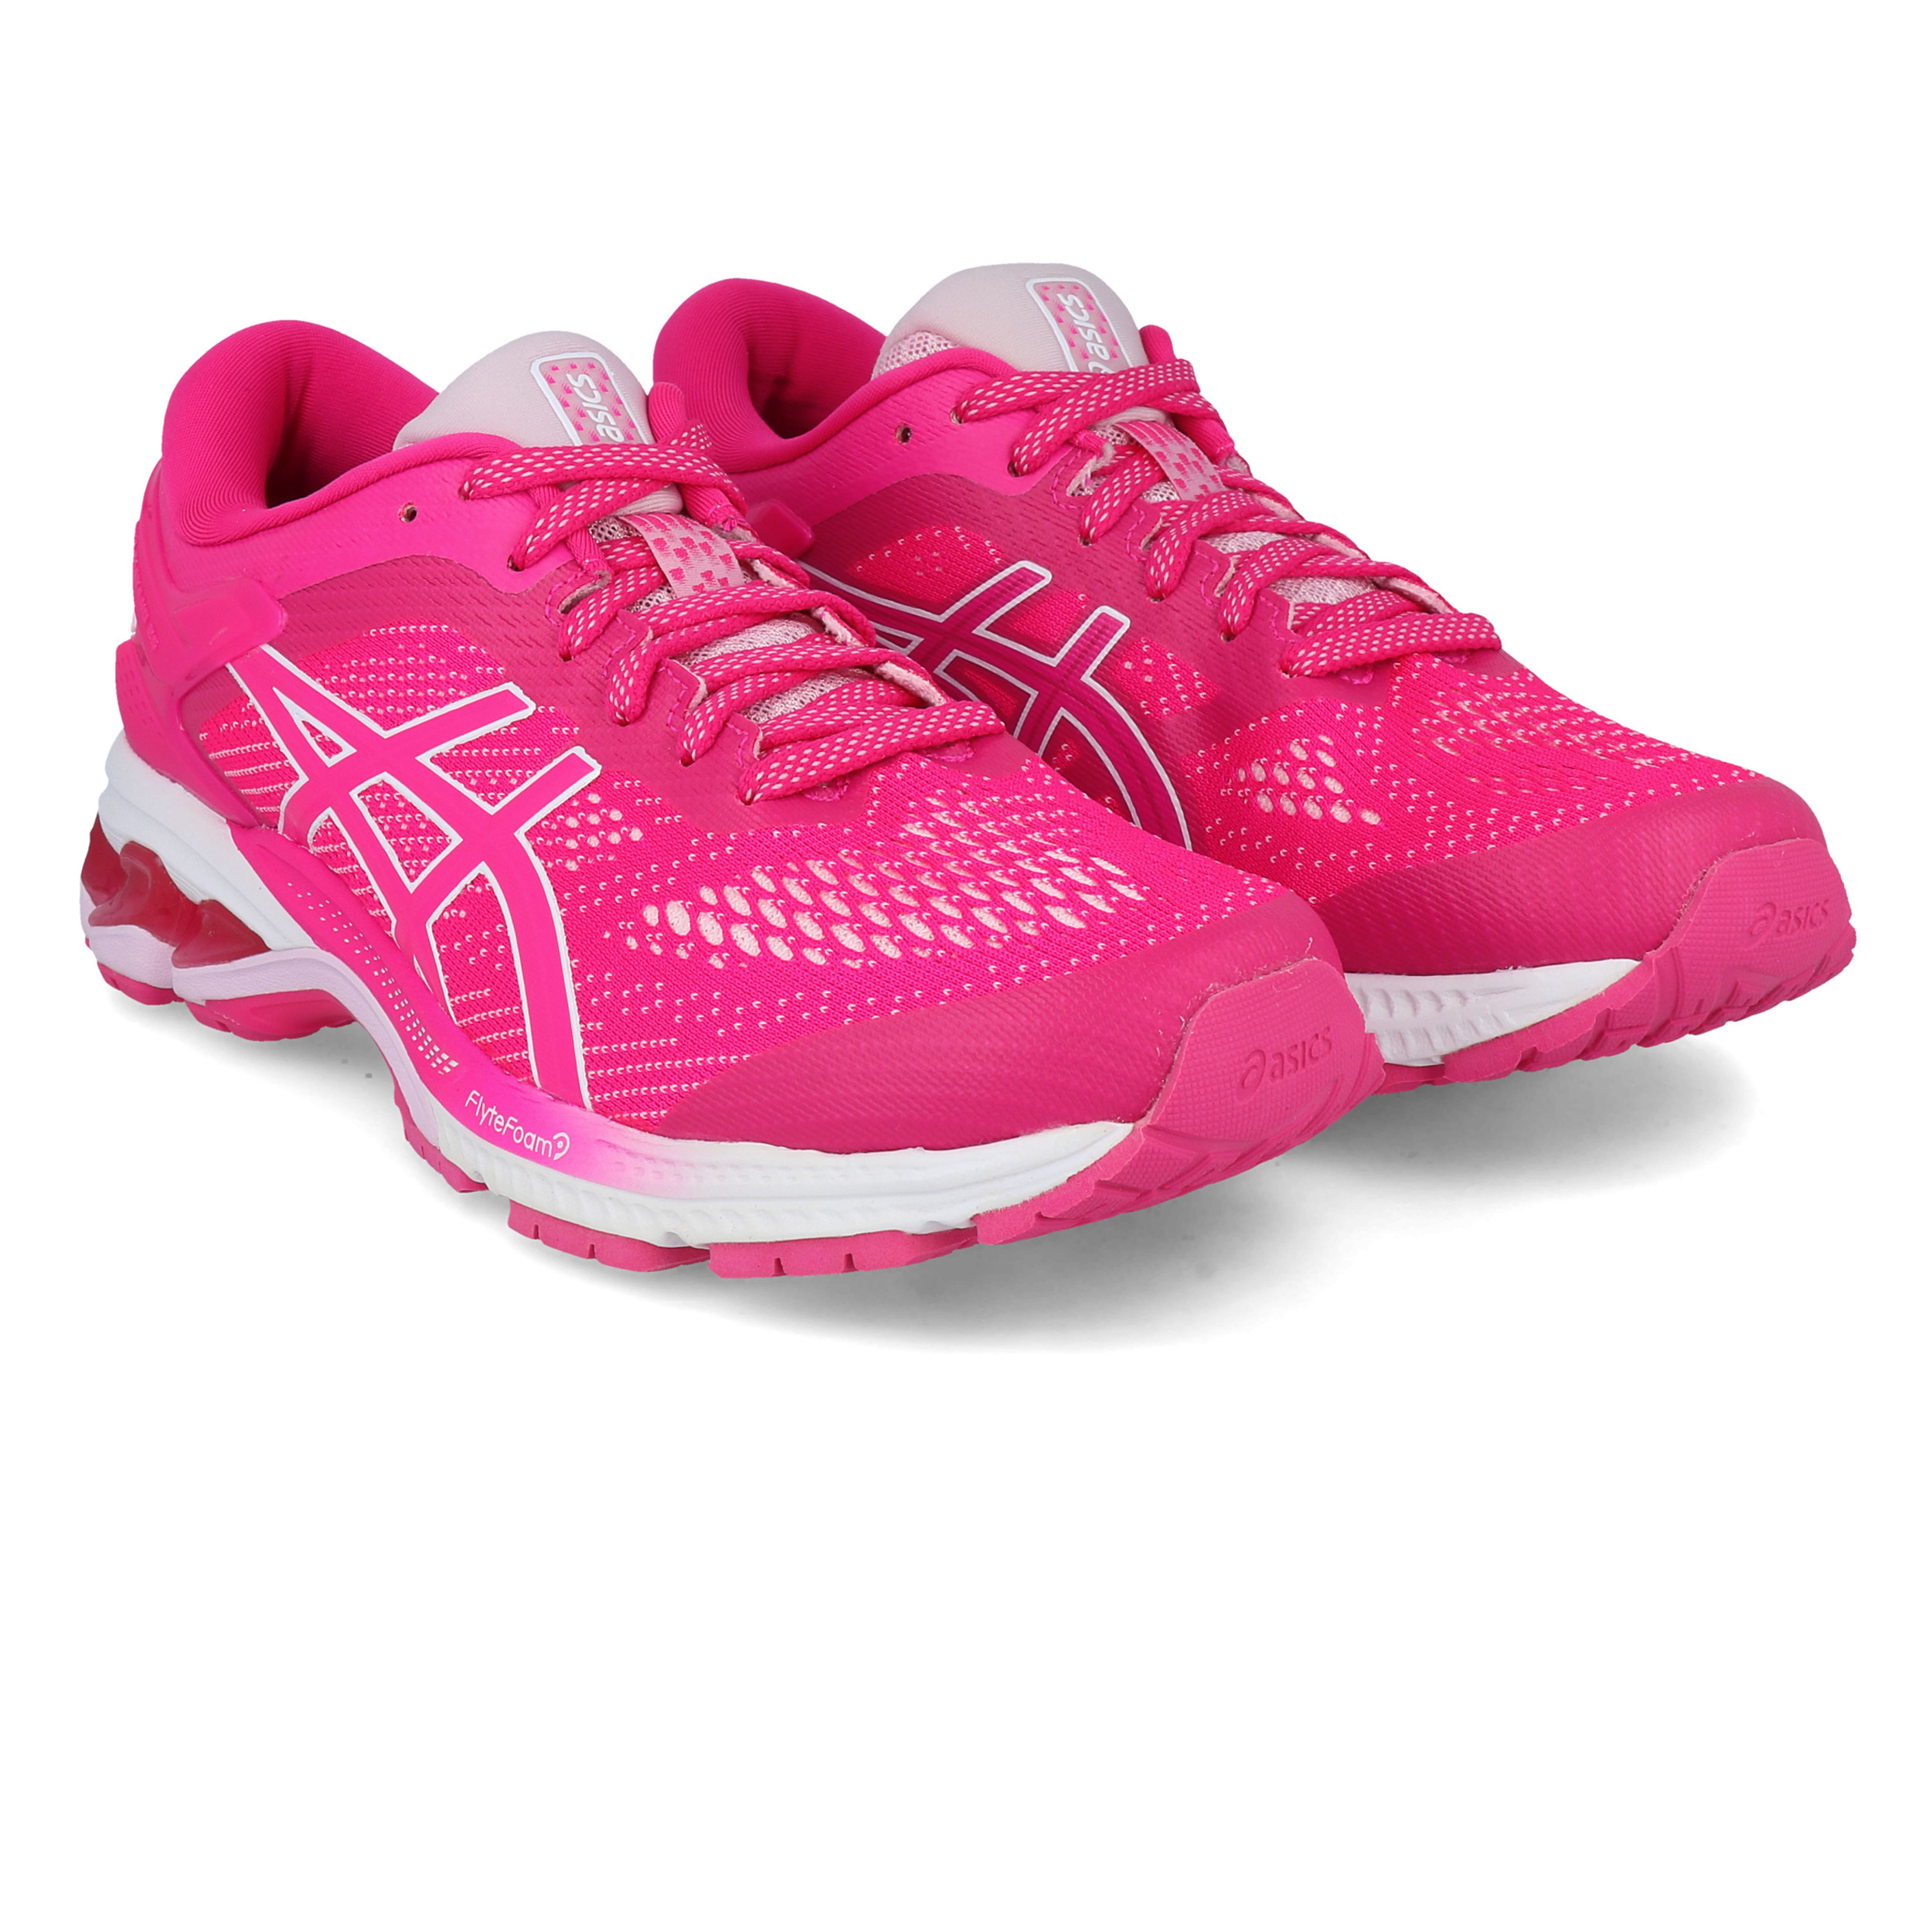 Details about Asics Womens Gel-Kayano 26 Running Shoes Trainers Sneakers -  Pink Sports